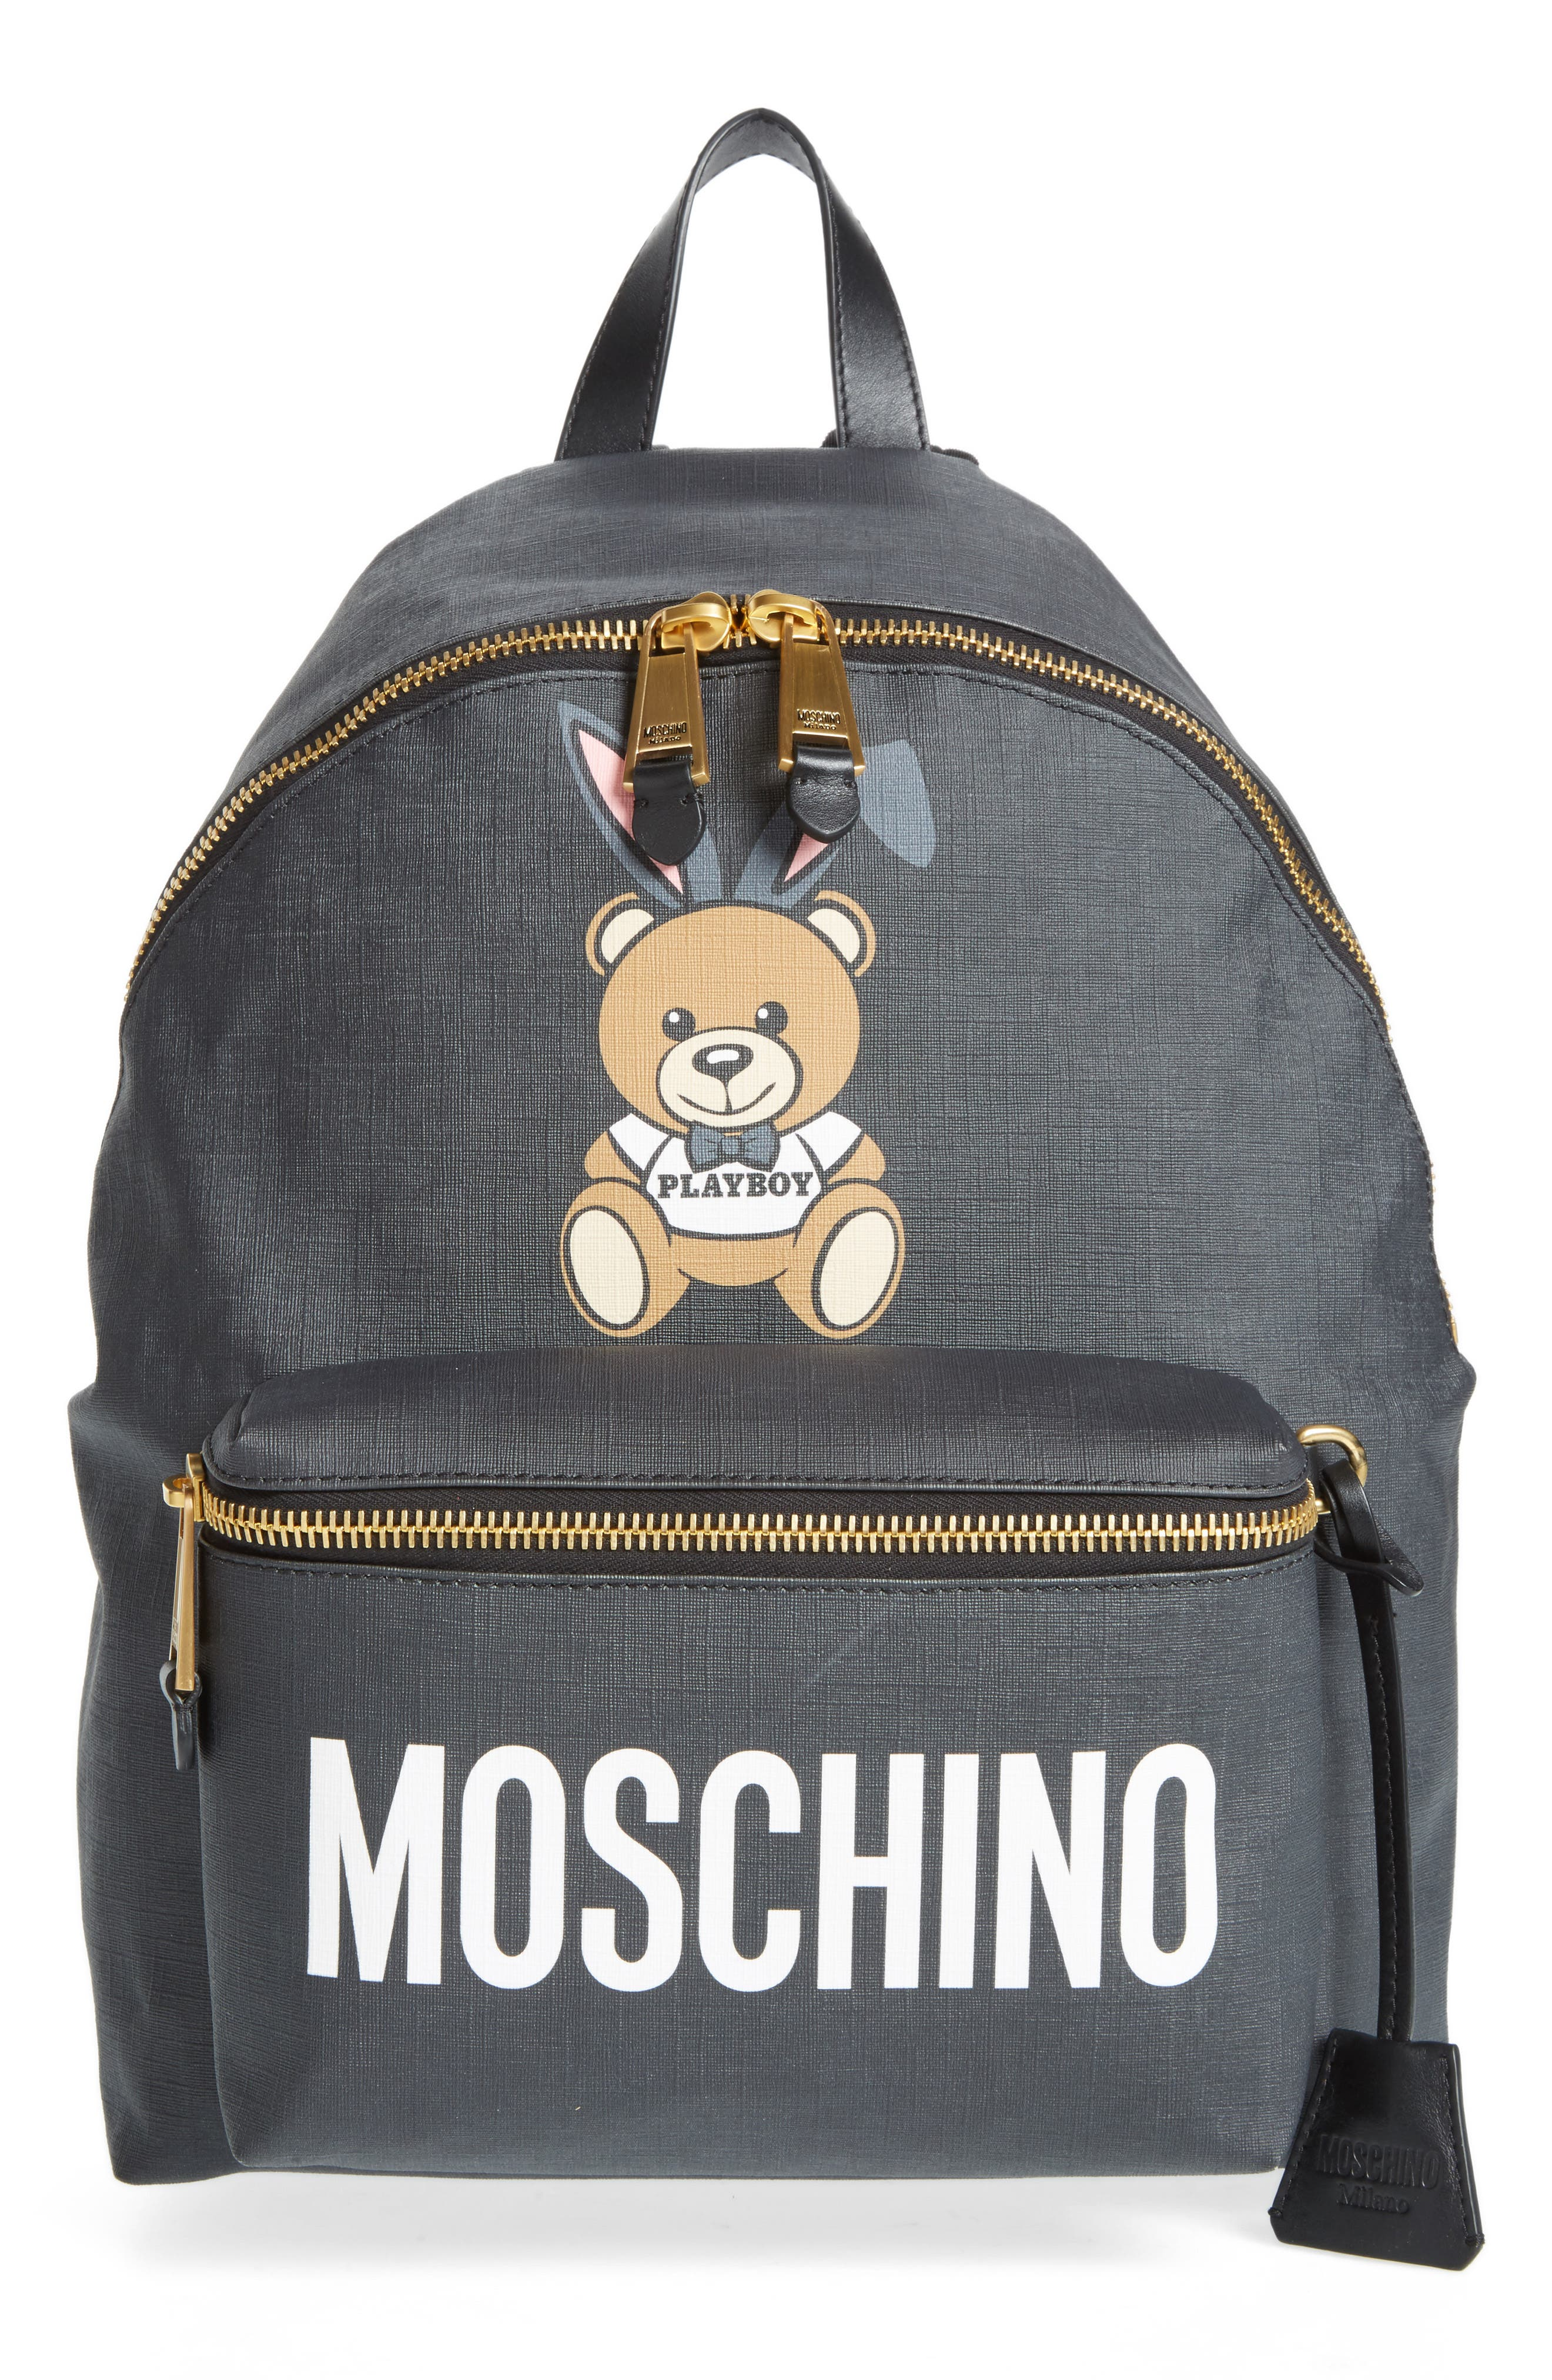 Alternate Image 1 Selected - Moschino x Playboy Large Bunny Bear Woven Backpack